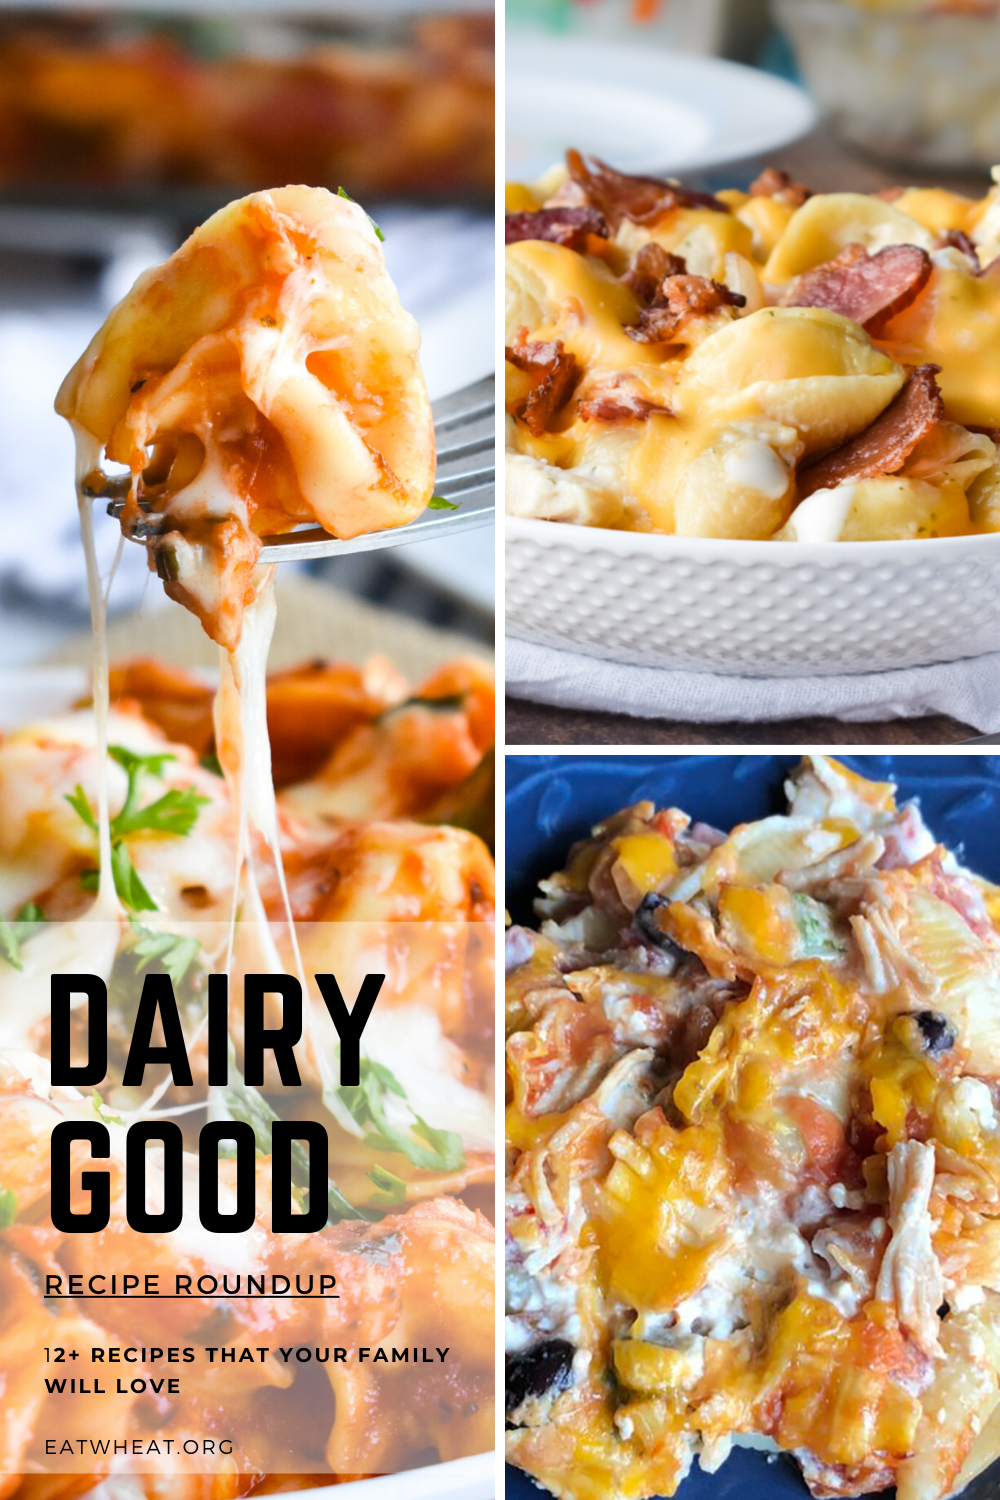 Dairy Month Recipes are here! From Cheesy Spinach Tortellini to Chicken, Bacon, Ranch Casserole, there are some amazing recipes.